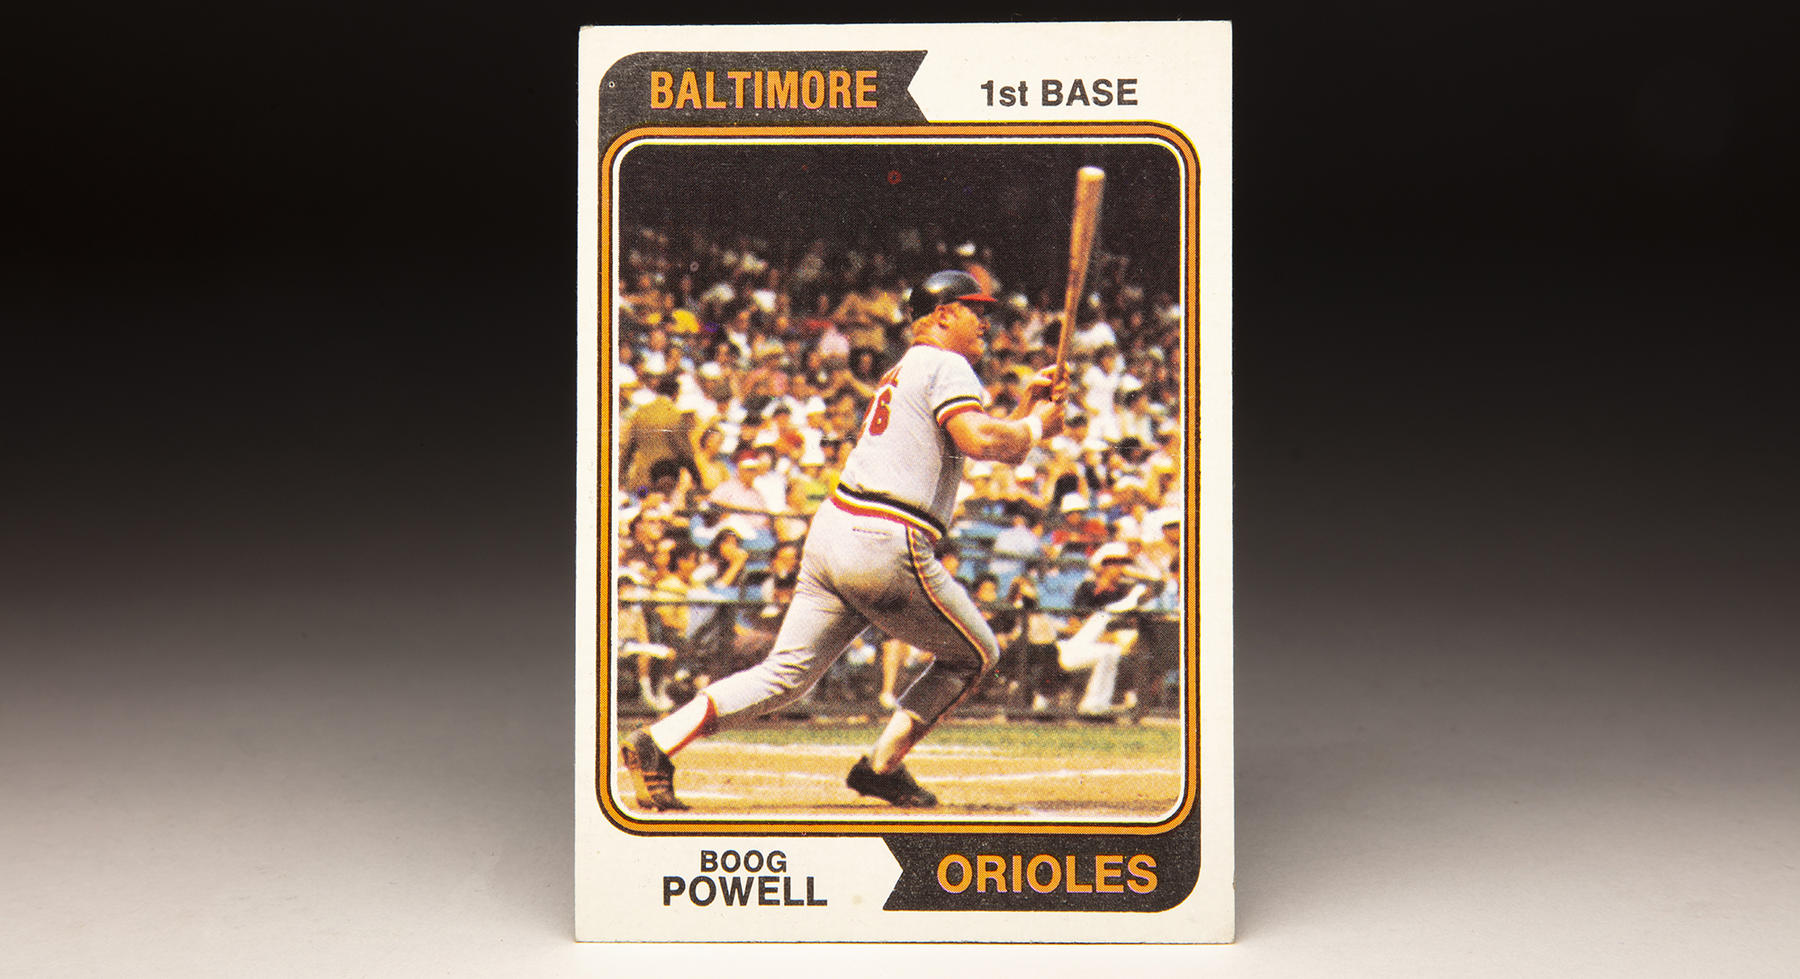 Boog Powell's 1974 Topps card highlights his powerful left-handed swing that resulted in 339 home runs over 17 big league seasons. (Milo Stewart Jr./National Baseball Hall of Fame and Museum)